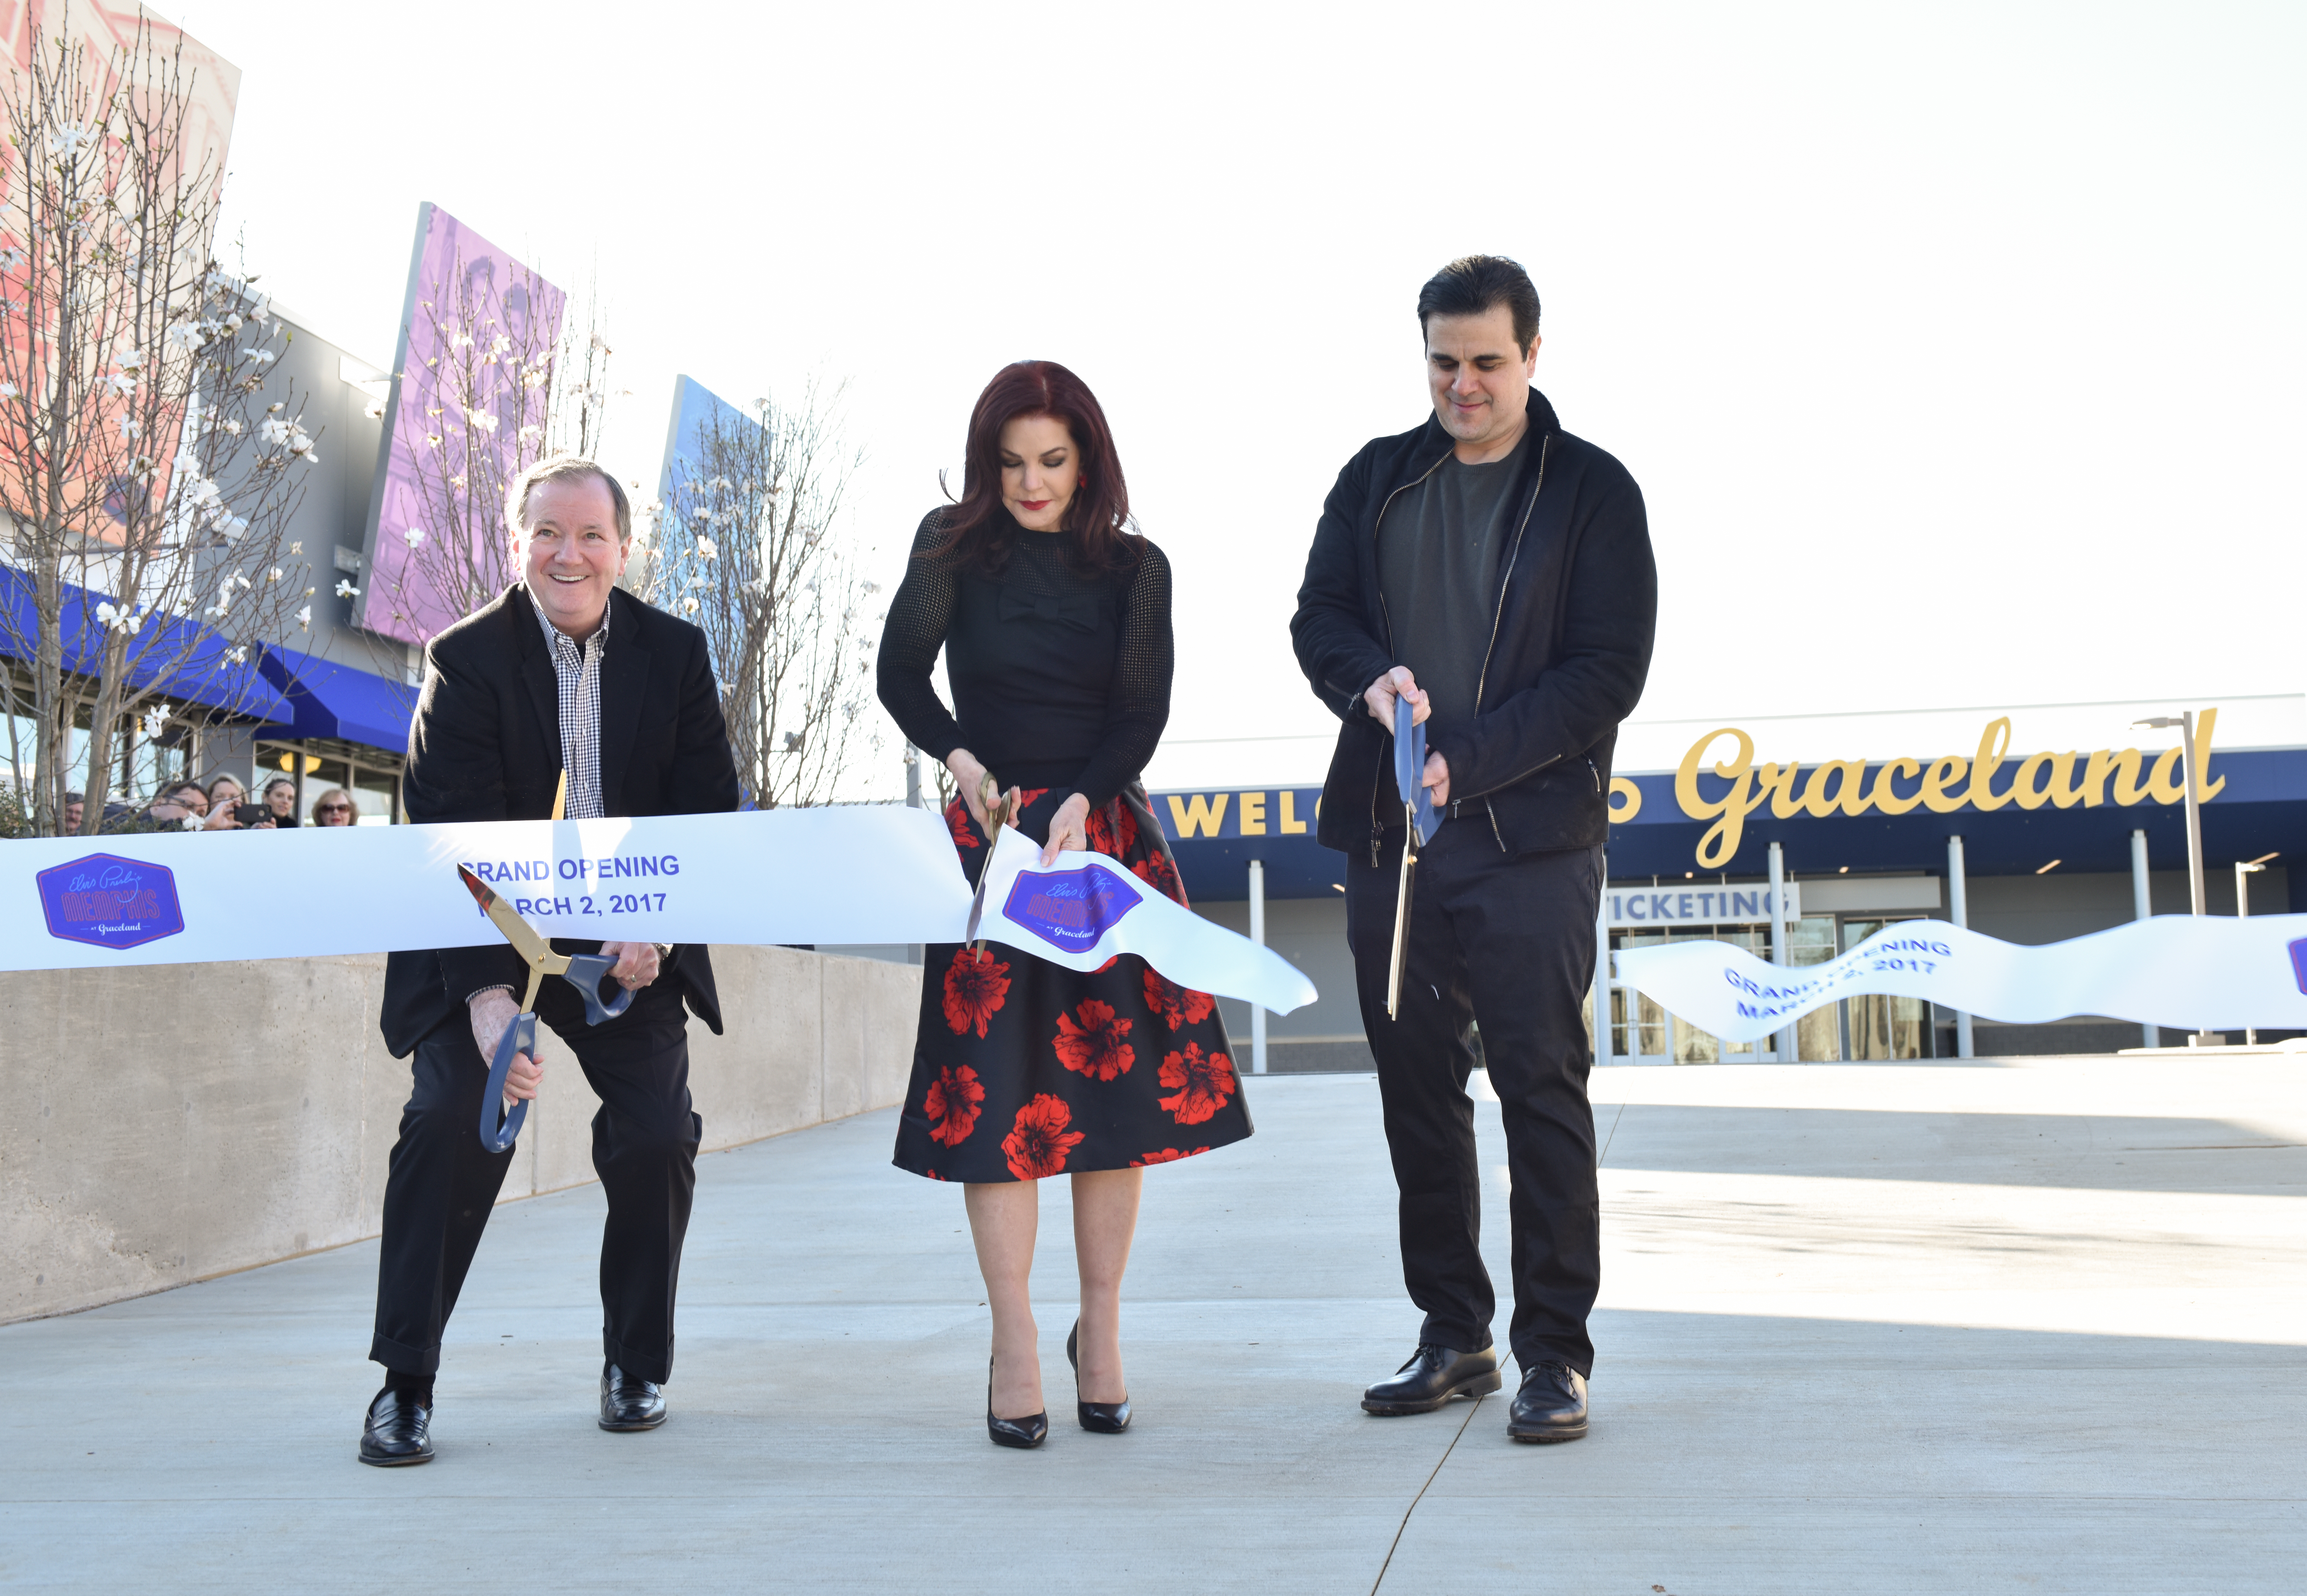 From left to right: Elvis Presley Enterprses CEO Jack Soden, Priscilla Presley and Graceland Holdings LLC Managing Partner Joel Weinshanker cut the ribbon to open the new Elvis Presley's Memphis Entertainment Complex at Graceland. (Photo: Business Wire)